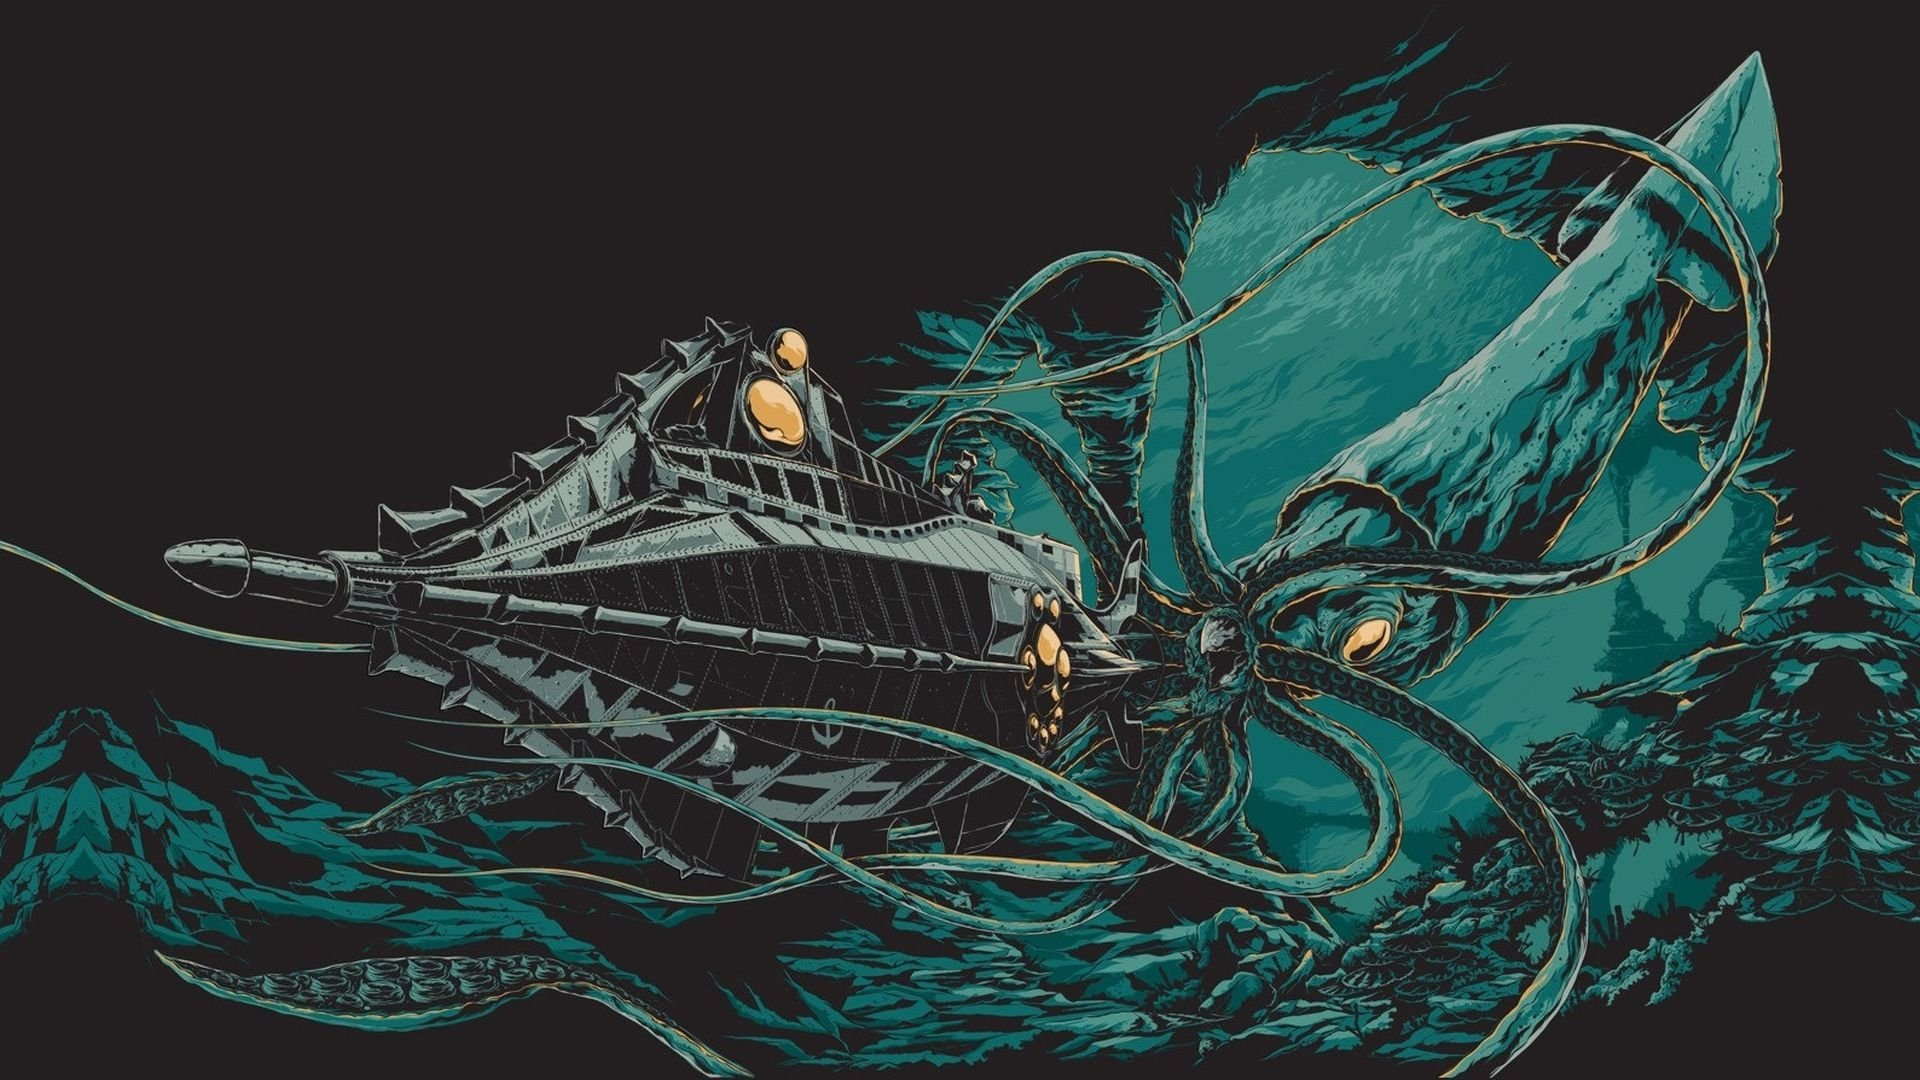 Squid Girl Iphone Wallpaper 20 000 Leagues Under The Sea Hd Wallpaper Background